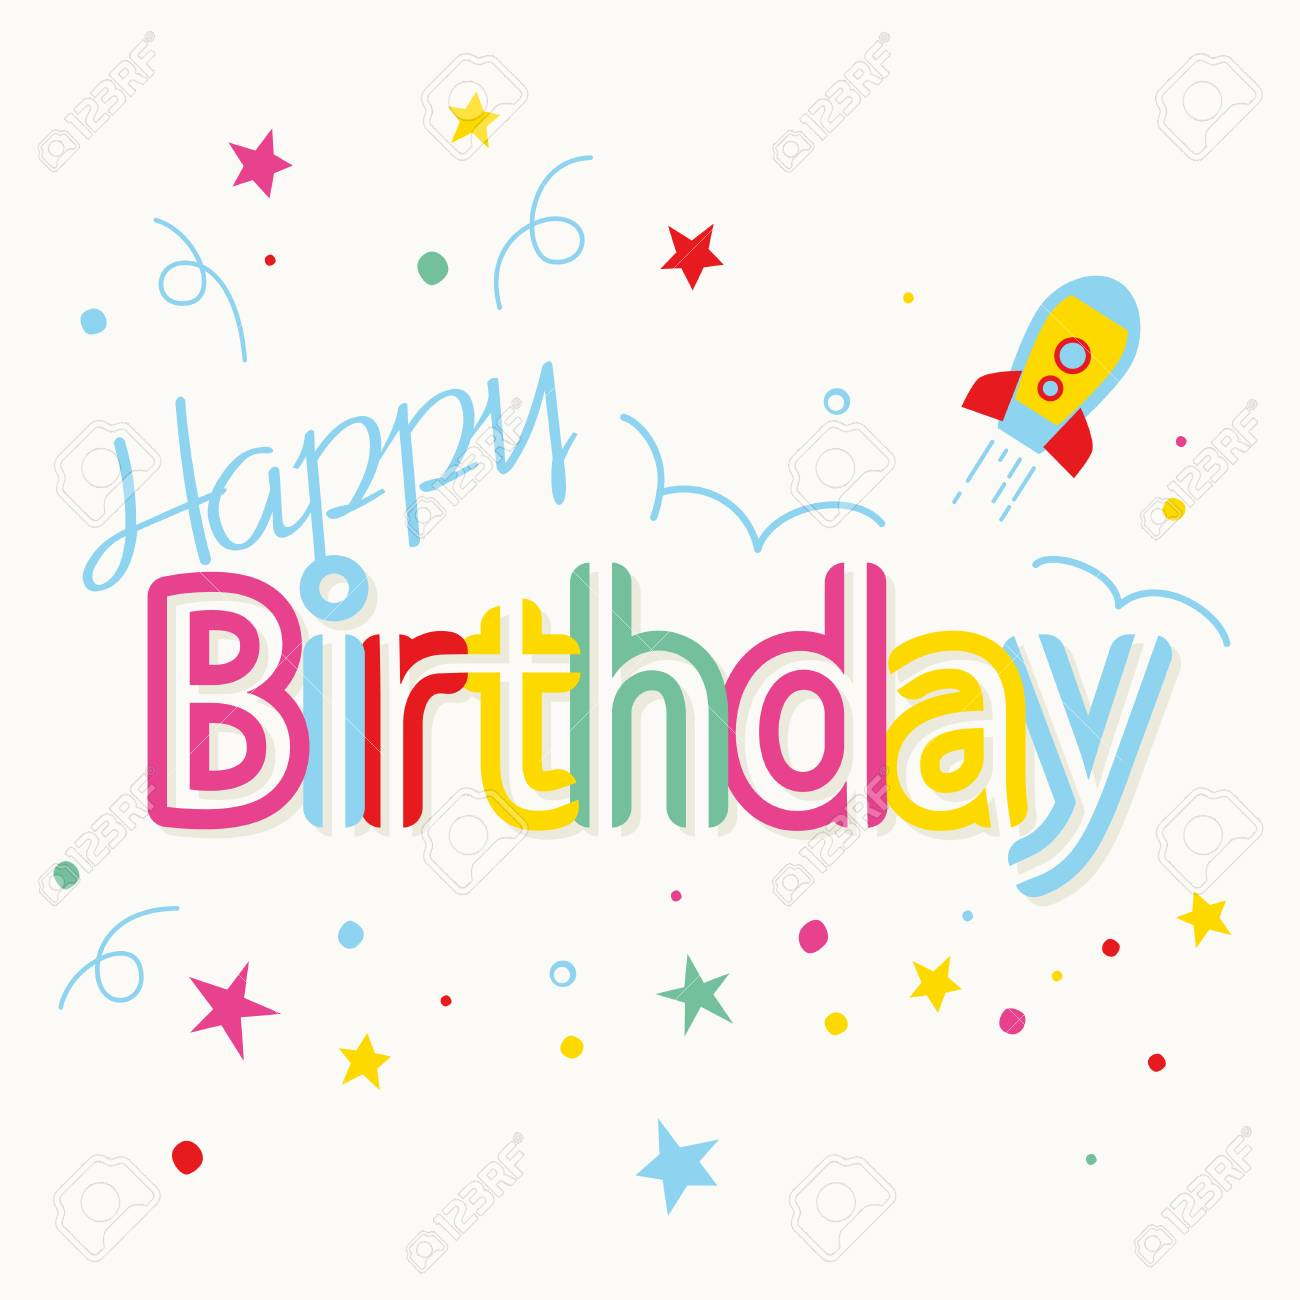 Happy Birthday Card Design With Colorful Stars Vector Illustration